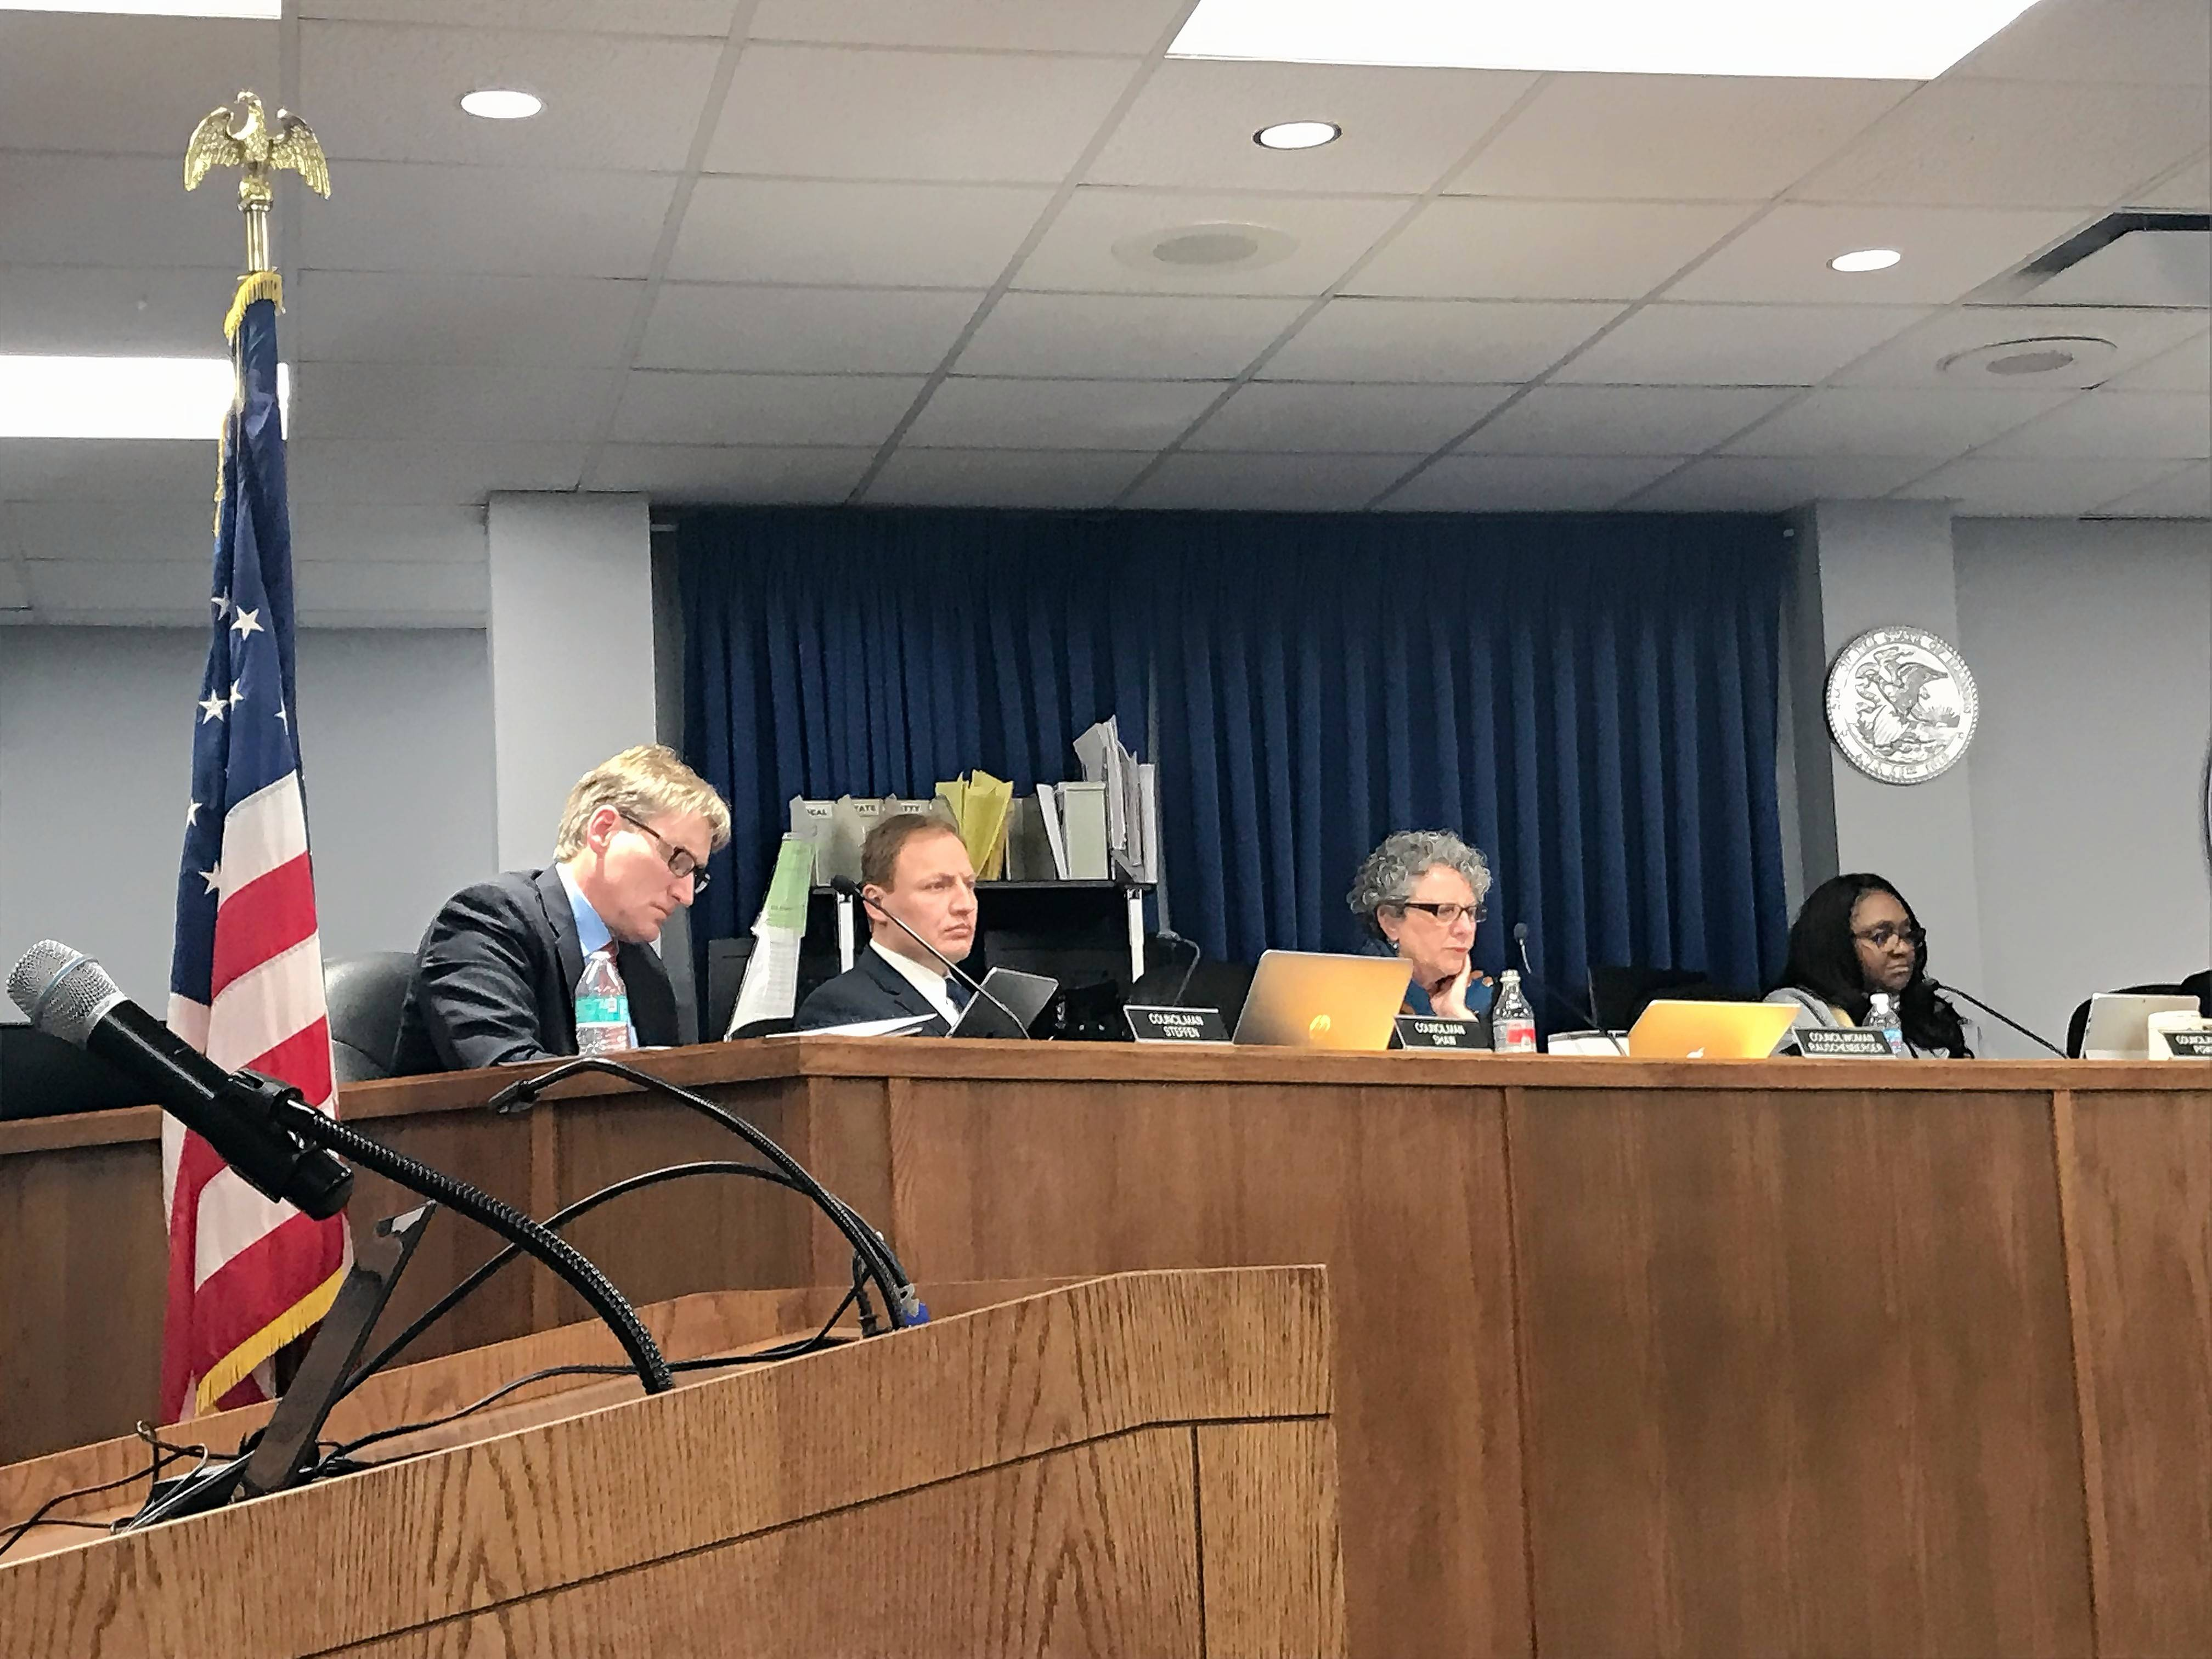 Elgin approves 2019 budget with flat property tax levy, Chicago Street work